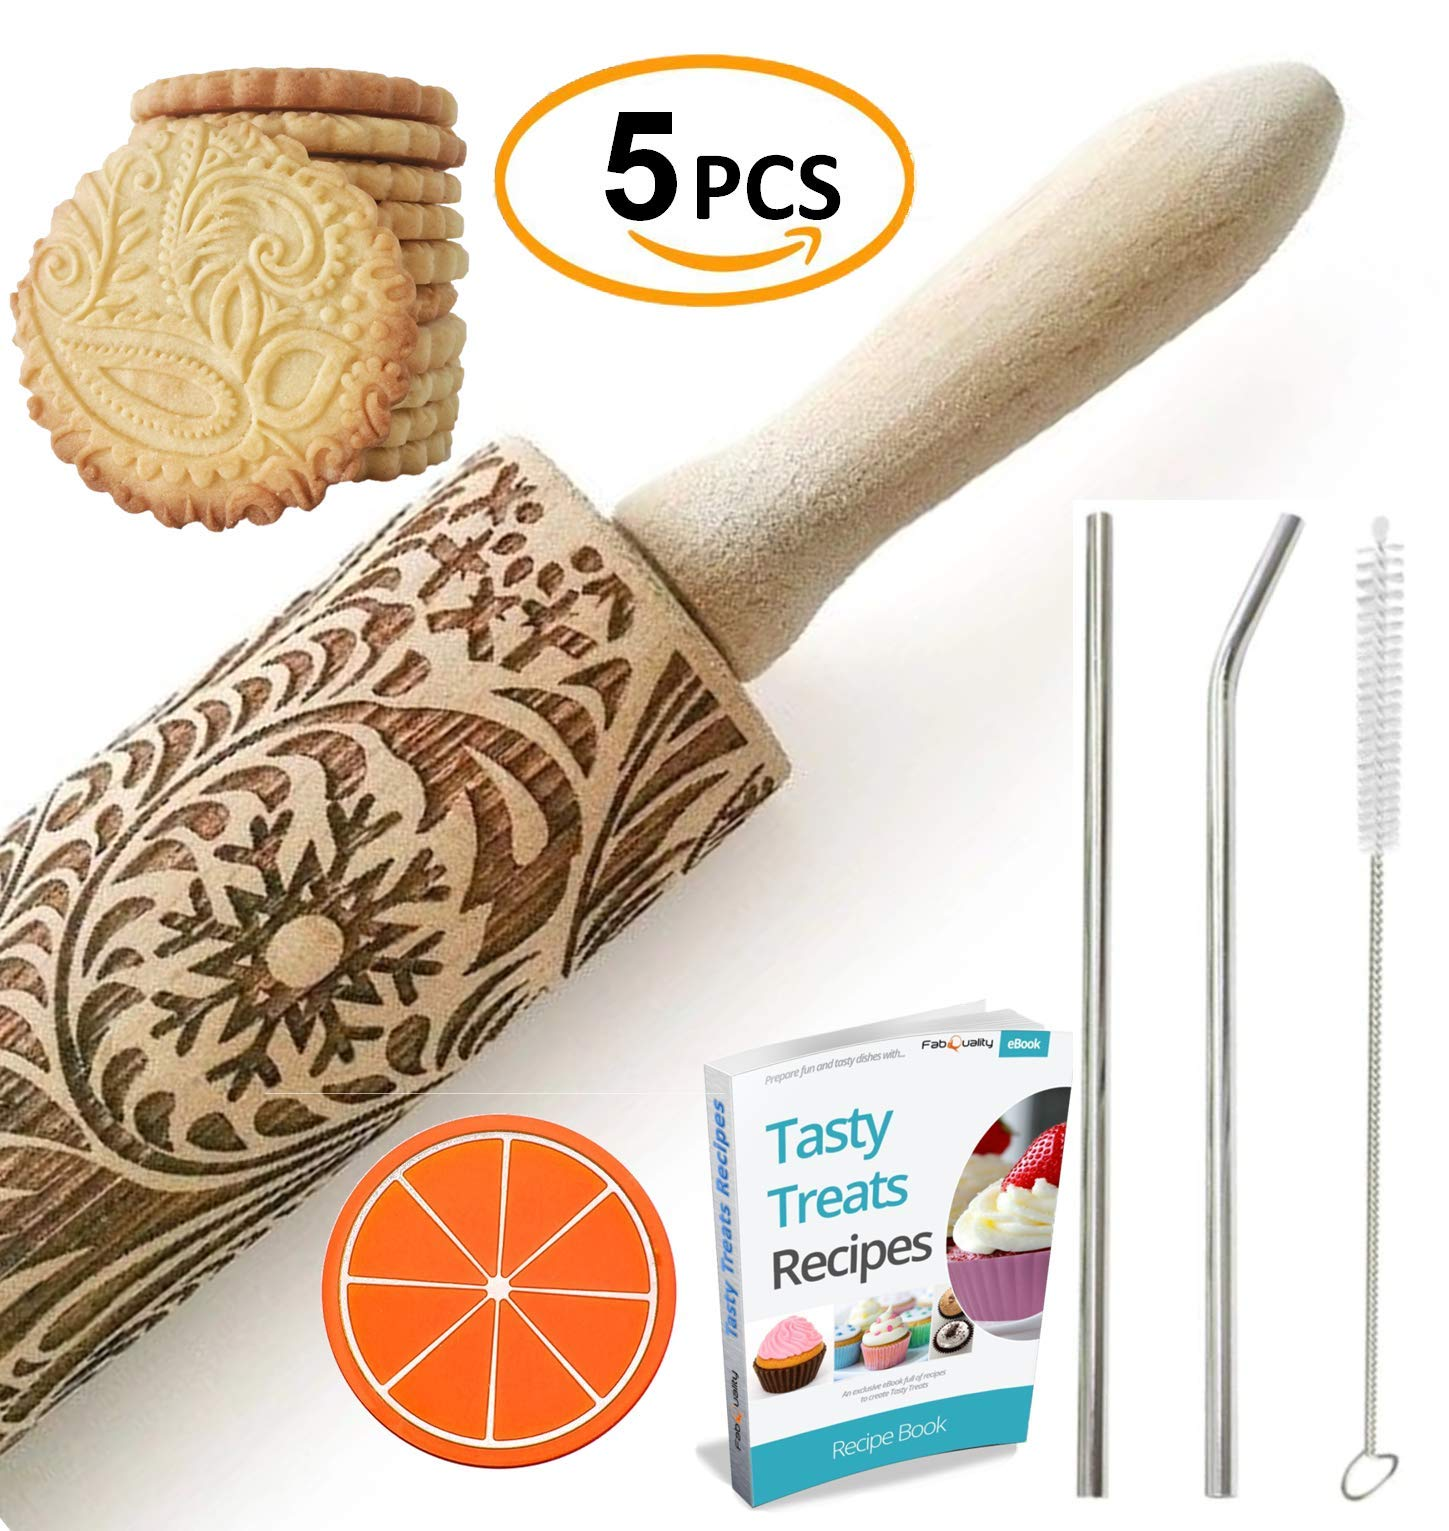 """Paisley Embossed Rolling Pin 16"""" Engraved Rolling Pin for Baking + Cute and Lightweight Wooden Rolling Pin for Kids and Adults to Make Cookie Dough – Attractive Professional Cookie Angel Food 1 START HAVING FUN IN THE KITCHEN WITH ALL YOUR FAMILY. Our textured rolling pin 16 Inch is very easy to use, so have some fun using this engraved rolling pin with your whole family. This embossed rolling pin can be used for fancy pastry decorations, cake decorations, shortbreads, basic biscuits, play dough, and even clay. This wood rolling pin can also be used as a kid's toy. EASY TO CLEAN:You only need to wash under running water and dry in the air,they will not take up too much space in the kitchen drawer ROLLING-PINS can be a really nice housewarming and pretty gift for your friends, kids and your kitchen."""